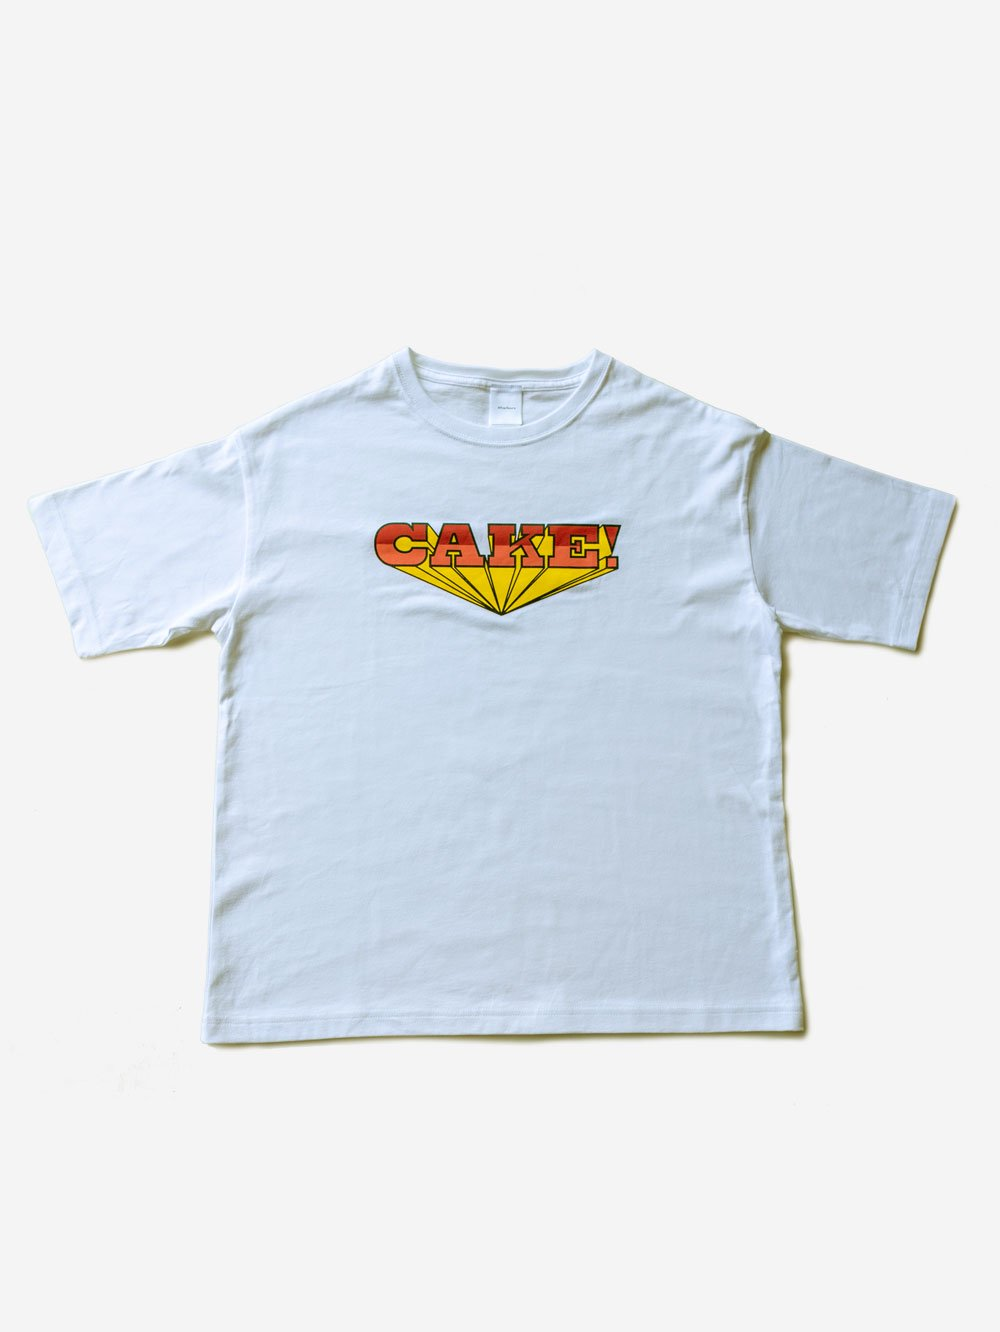 T-Shirt「CAKE!」<img class='new_mark_img2' src='https://img.shop-pro.jp/img/new/icons8.gif' style='border:none;display:inline;margin:0px;padding:0px;width:auto;' />